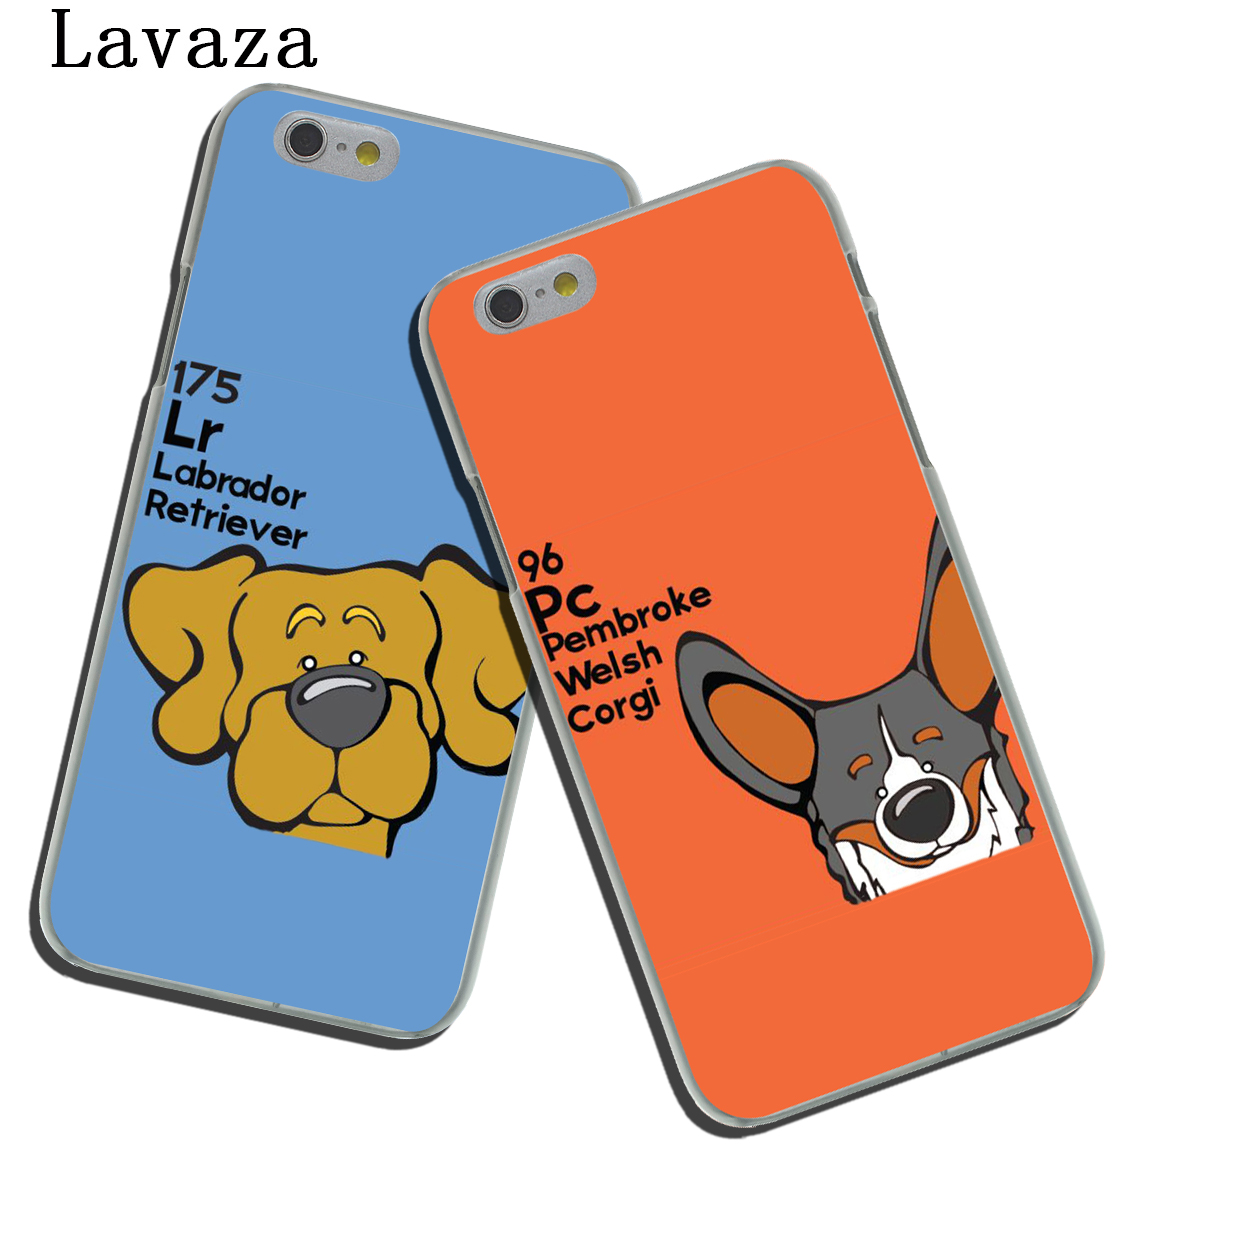 Lavaza periodic table of ele ments dog hard coque phone shell case lavaza periodic table of ele ments dog hard coque phone shell case for apple iphone x 8 7 6 6s plus 5 5s se 5c 4 4s 10 cover in half wrapped case from urtaz Gallery